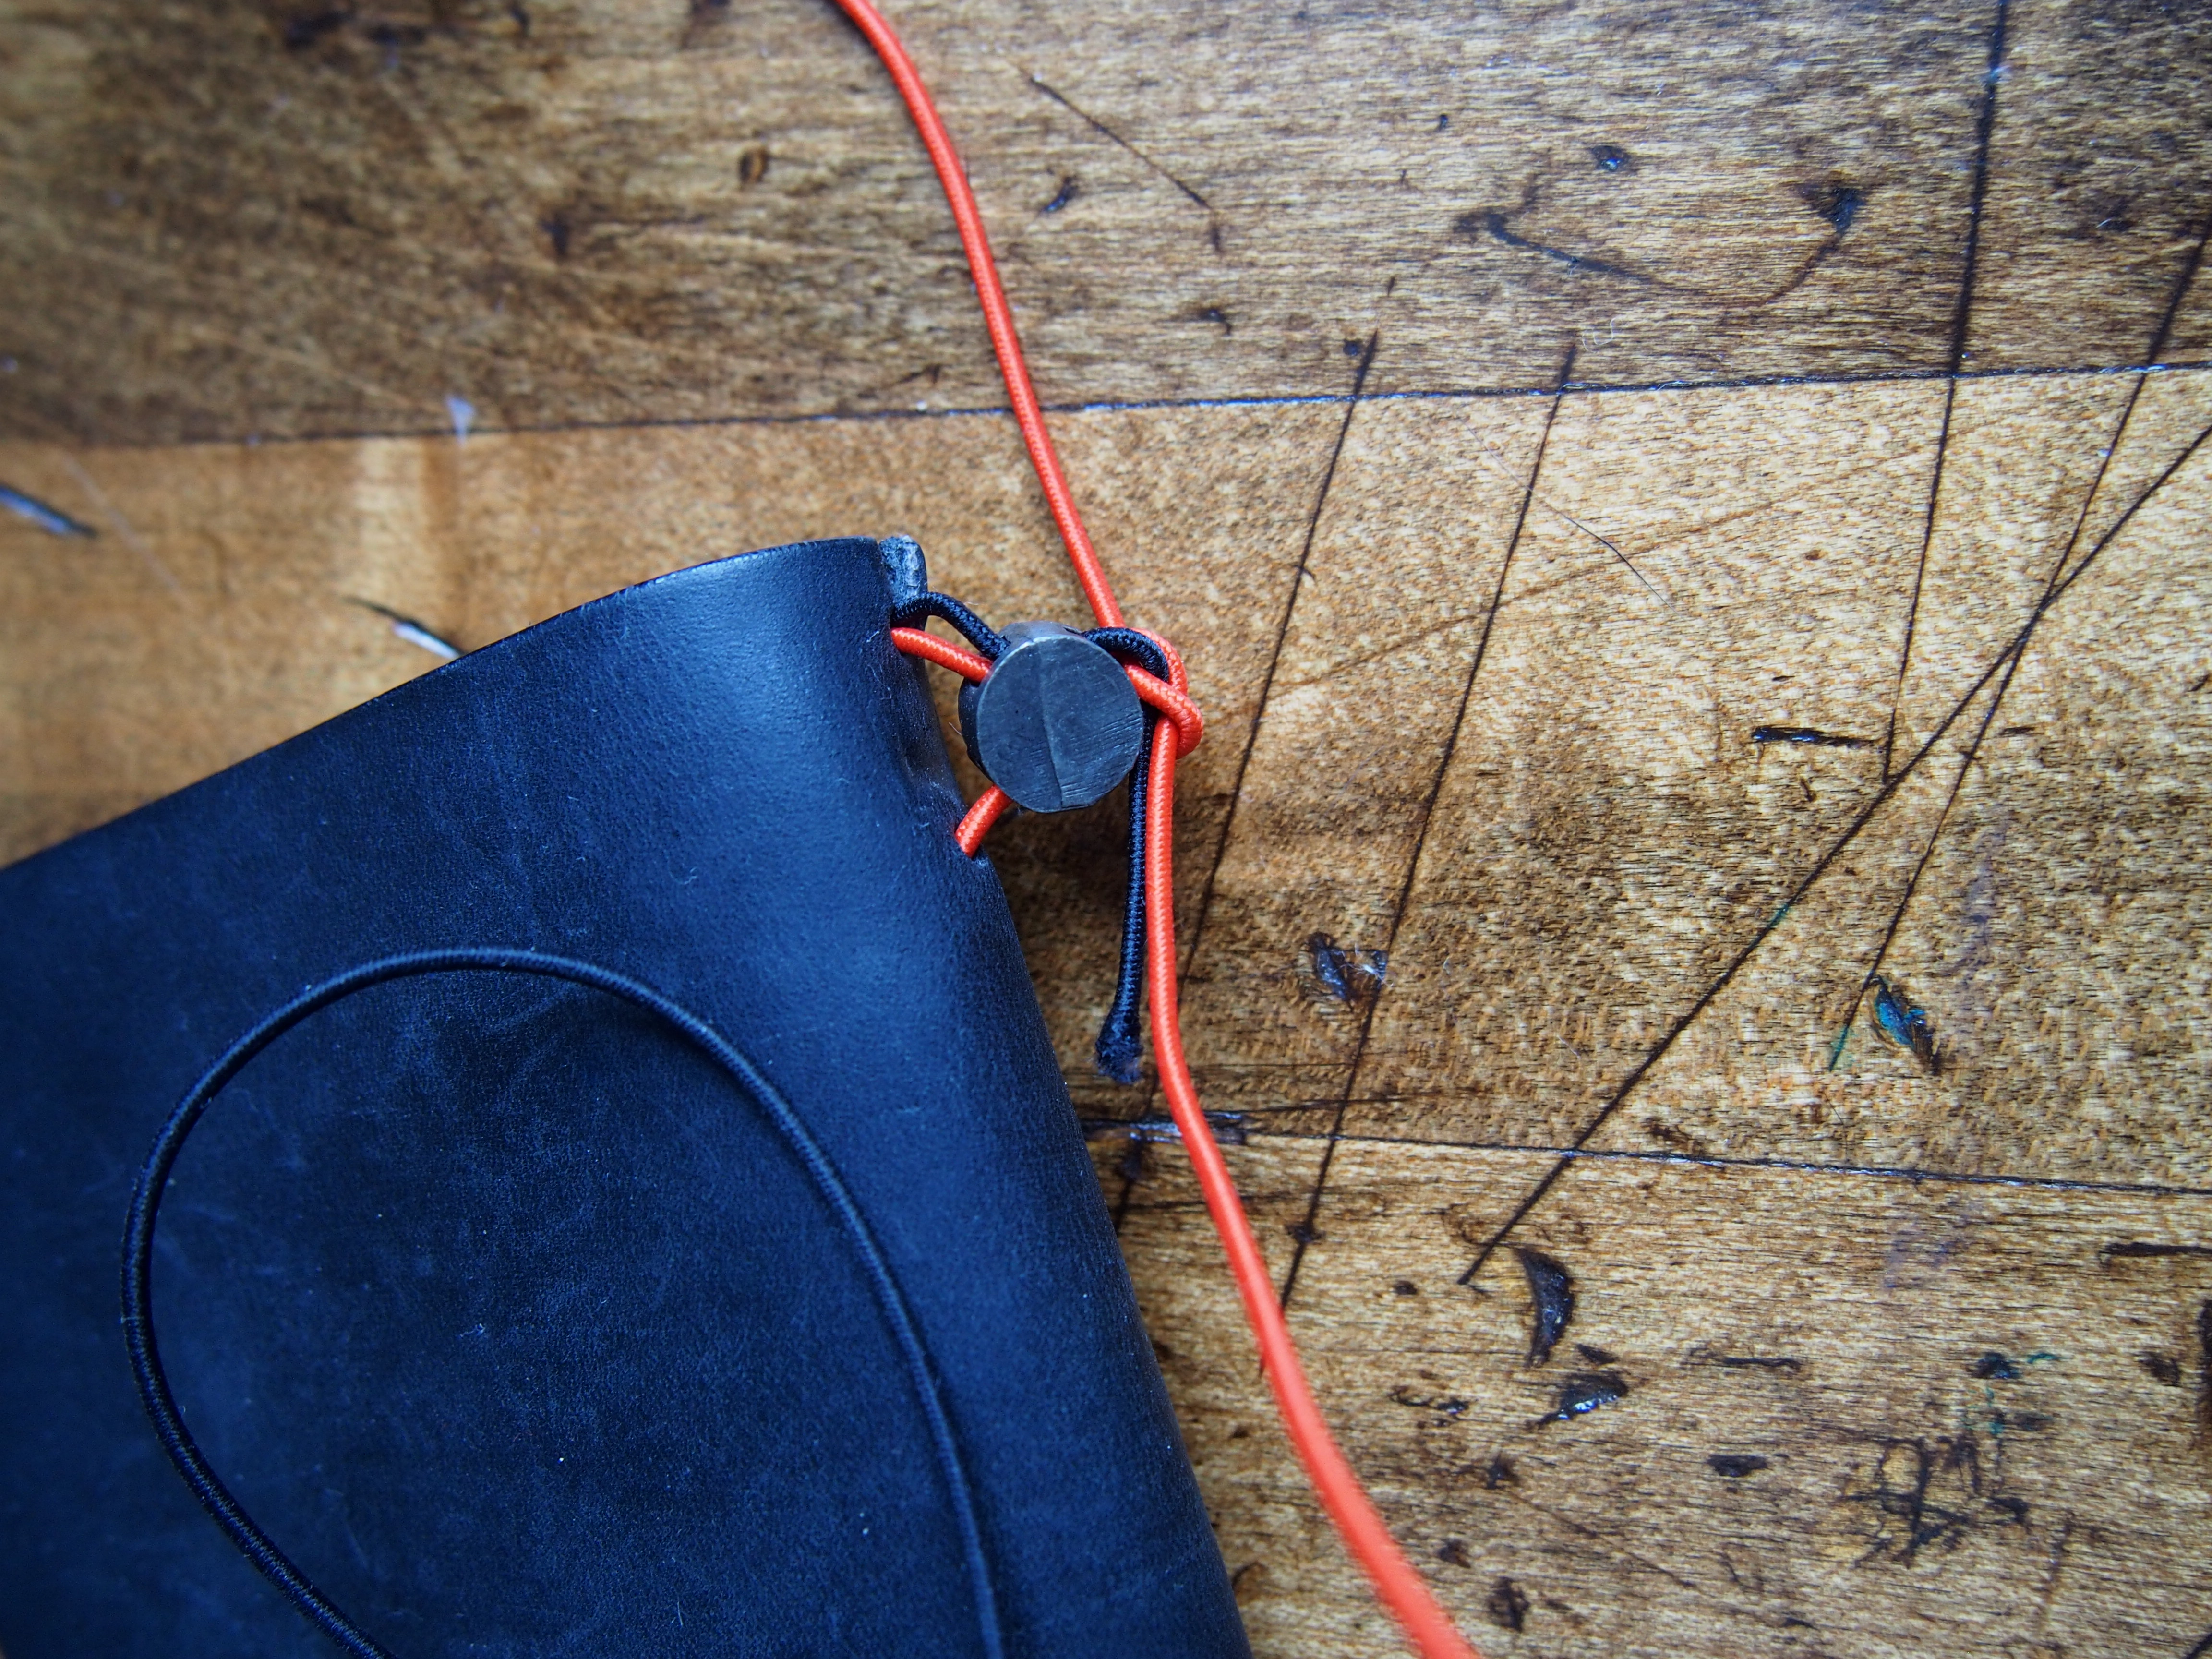 Step 7: Tie a knot. You'll be able to adjust the tightness now. And it's now or never, so take the time to make sure it's how you like. Better to err on the side of tightness, since the elastics can loosen up over time, but if it's too loose, you'll have to re-do the whole thing.